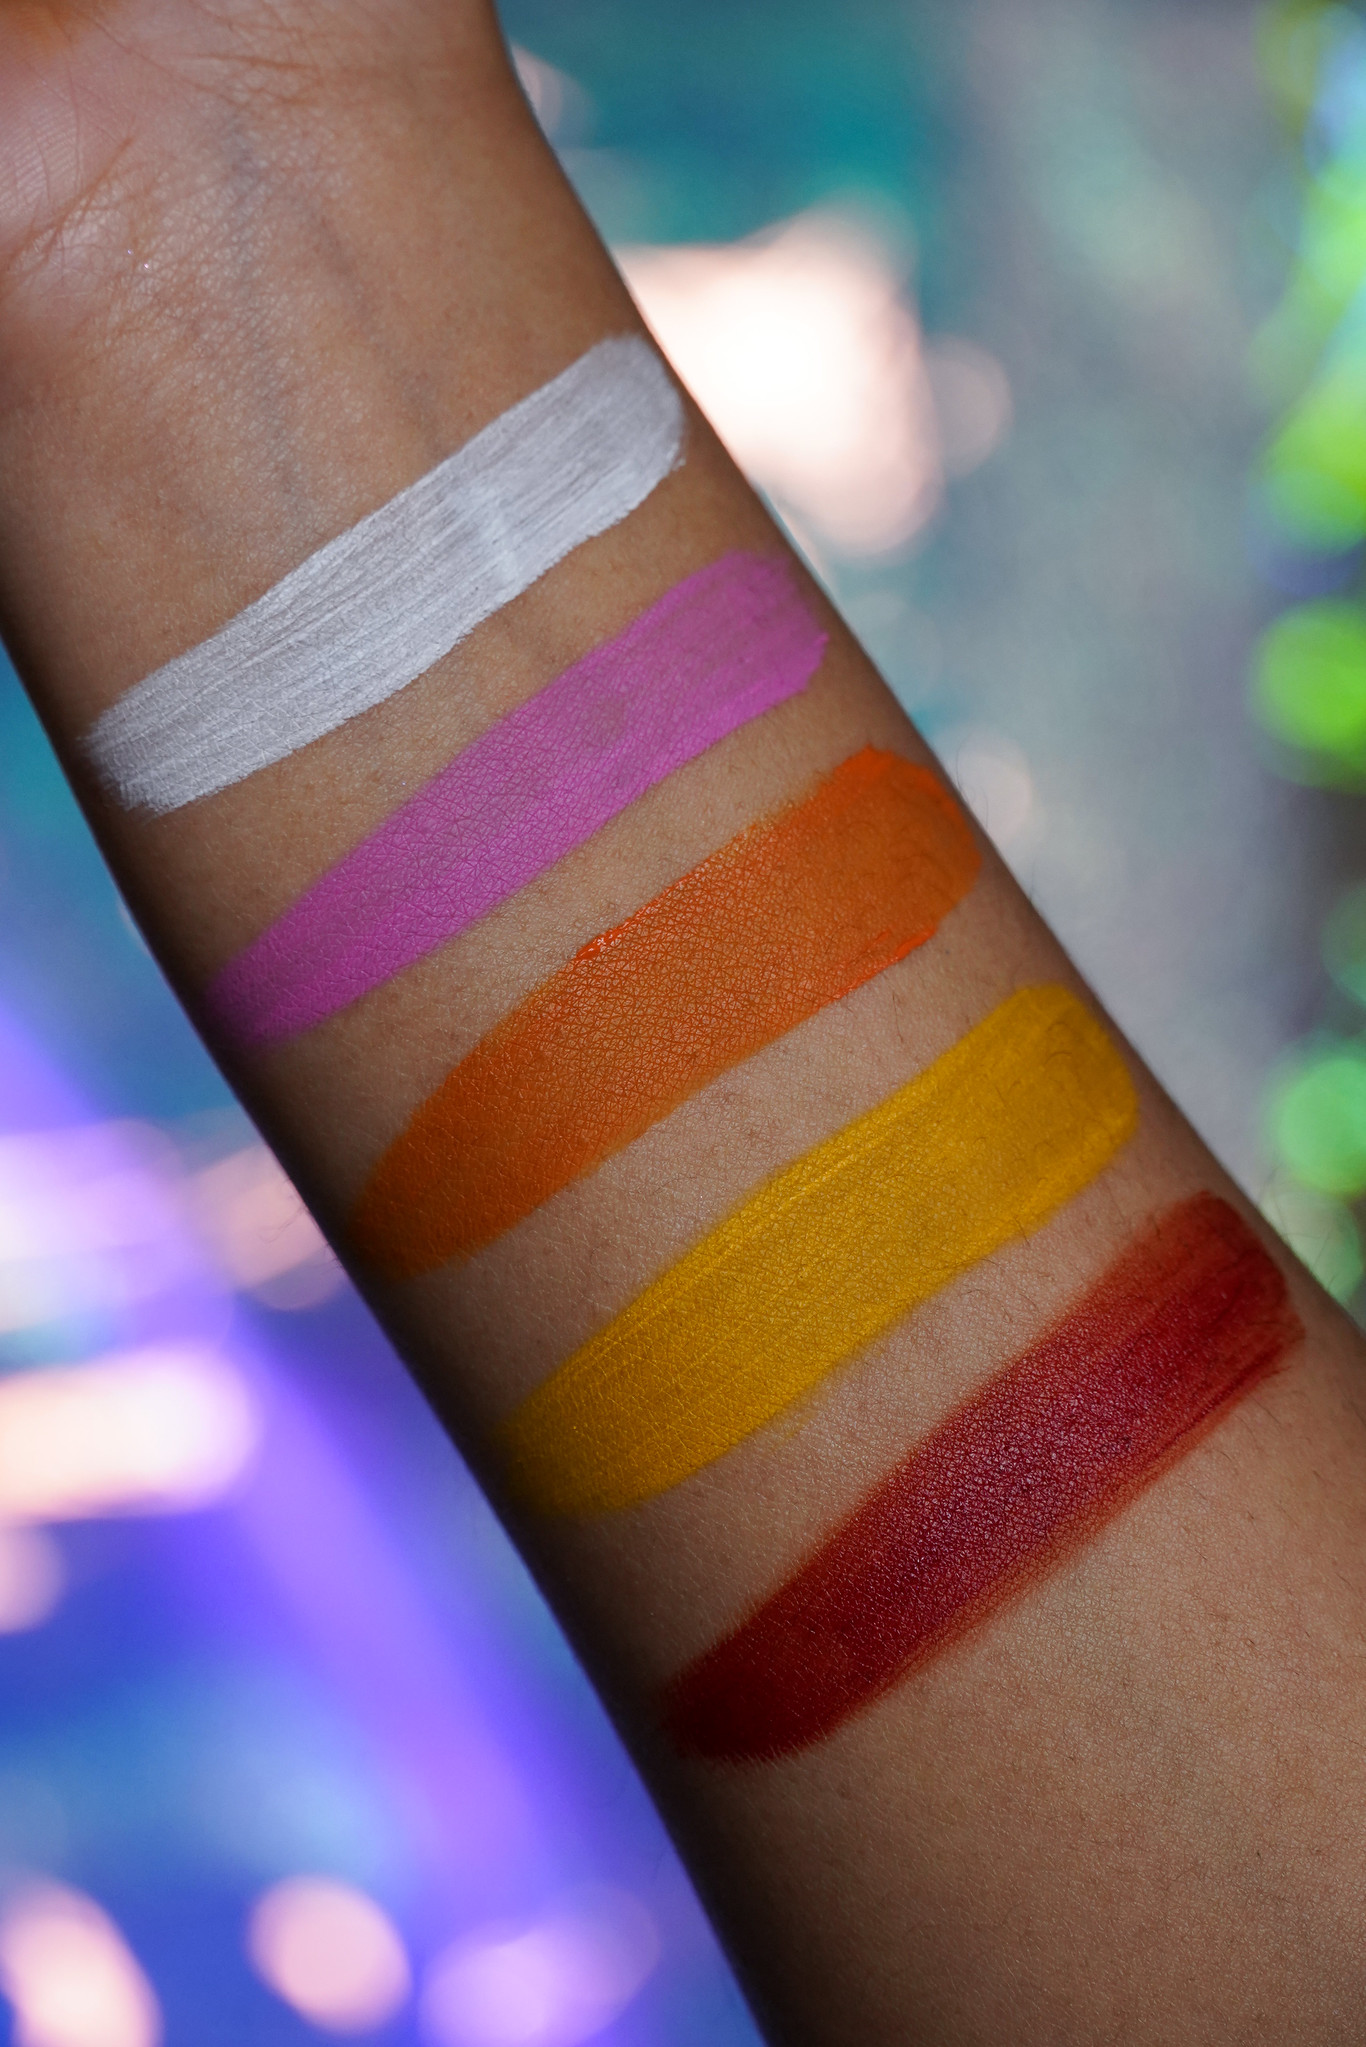 Depixym cosmetic emulsions pigments swatches 0004 1162 0924 0982 0899